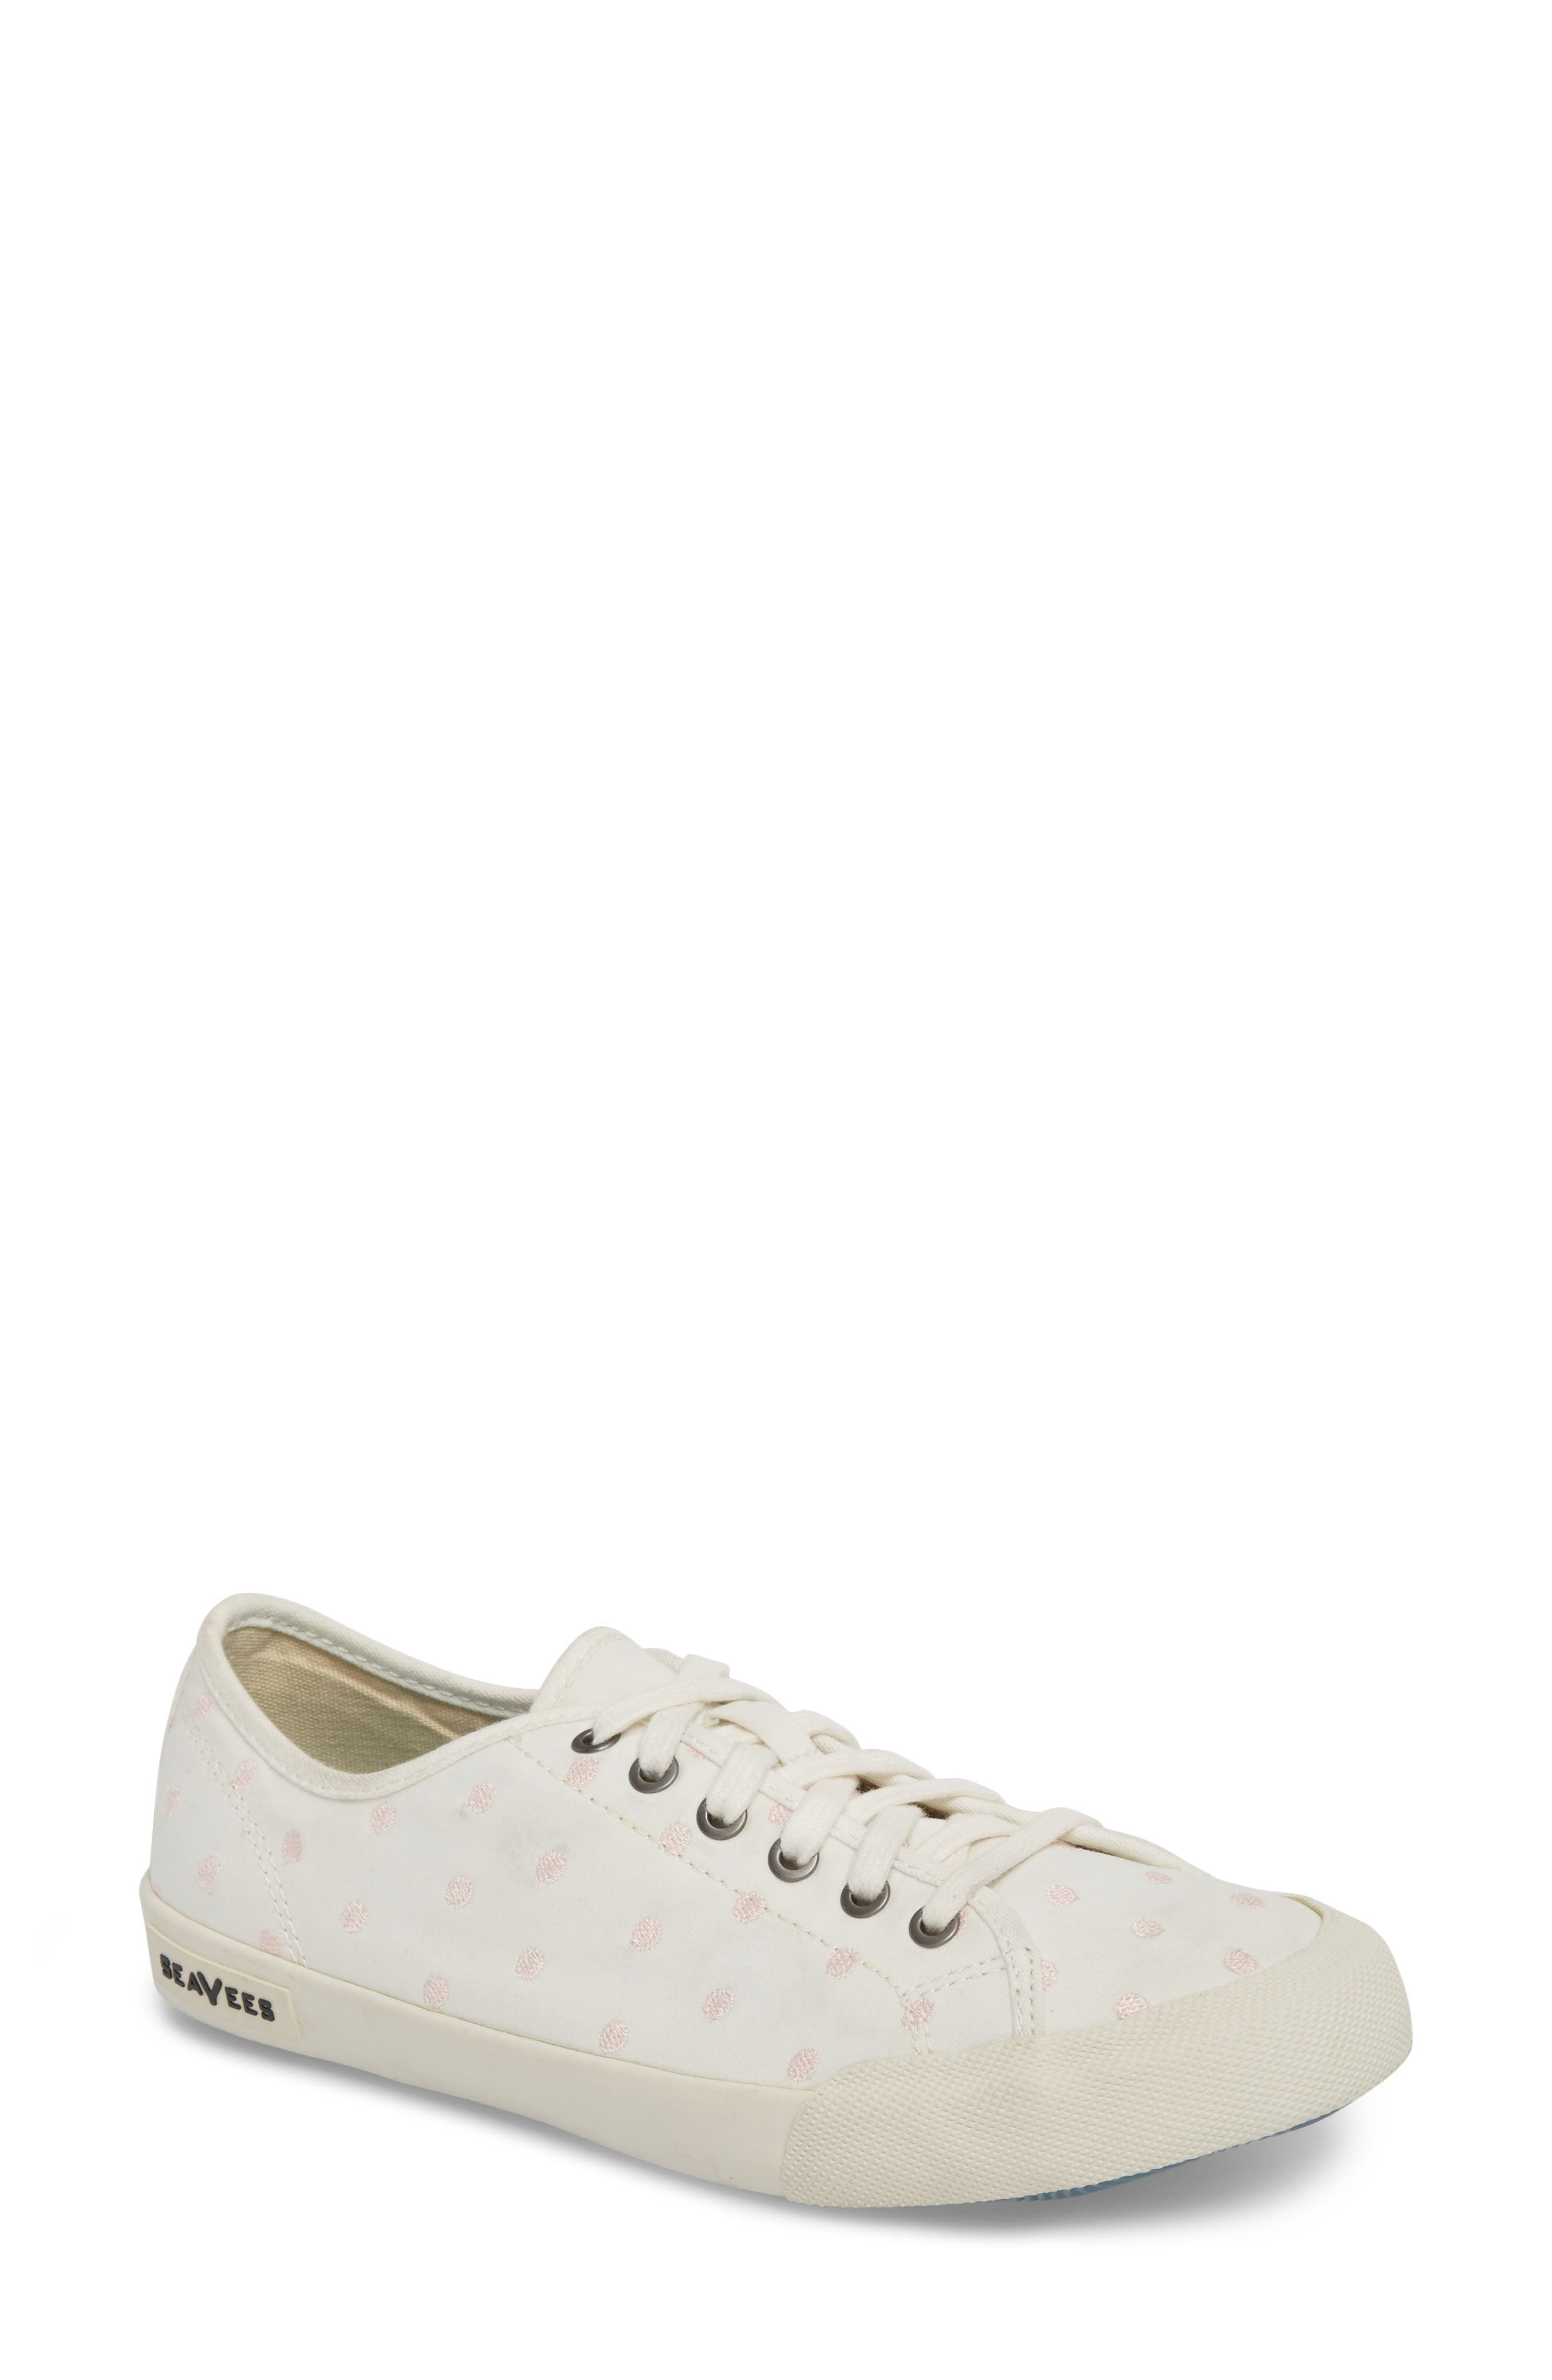 Monterey Embroidered Low Top Sneaker,                             Main thumbnail 1, color,                             Pearl